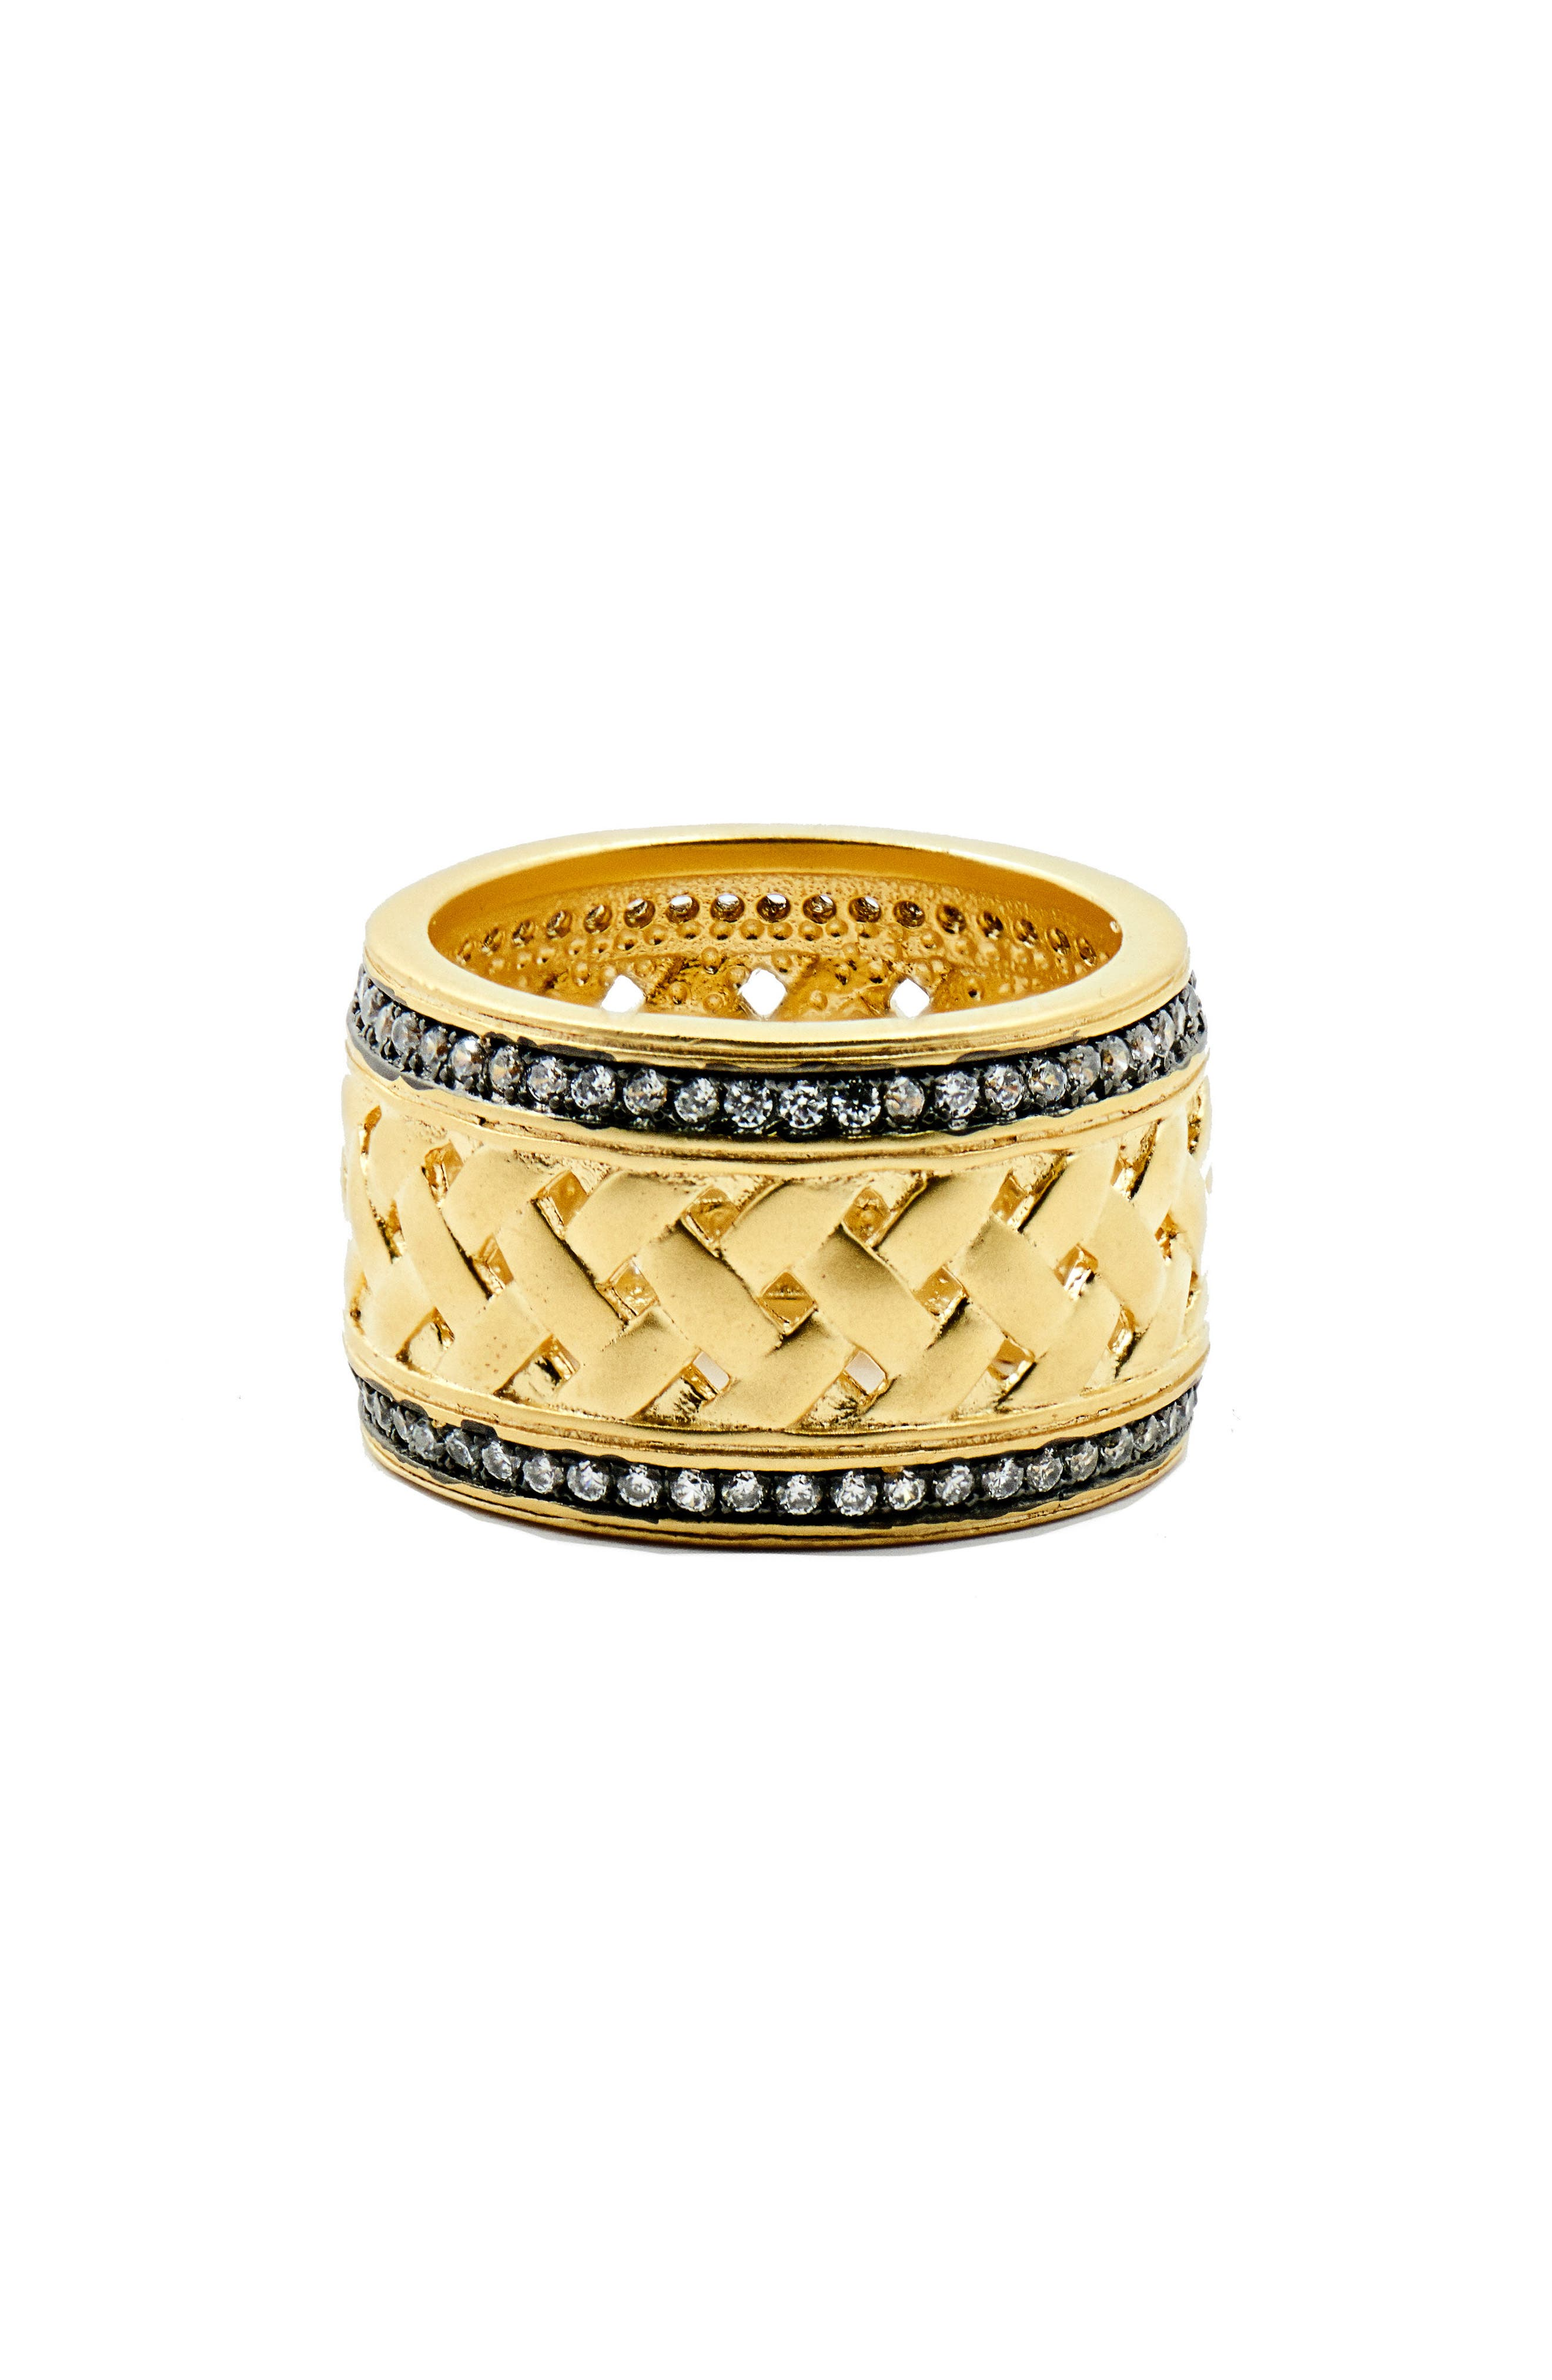 Main Image - FREIDA ROTHMAN Textured Ornaments Wide Band Ring